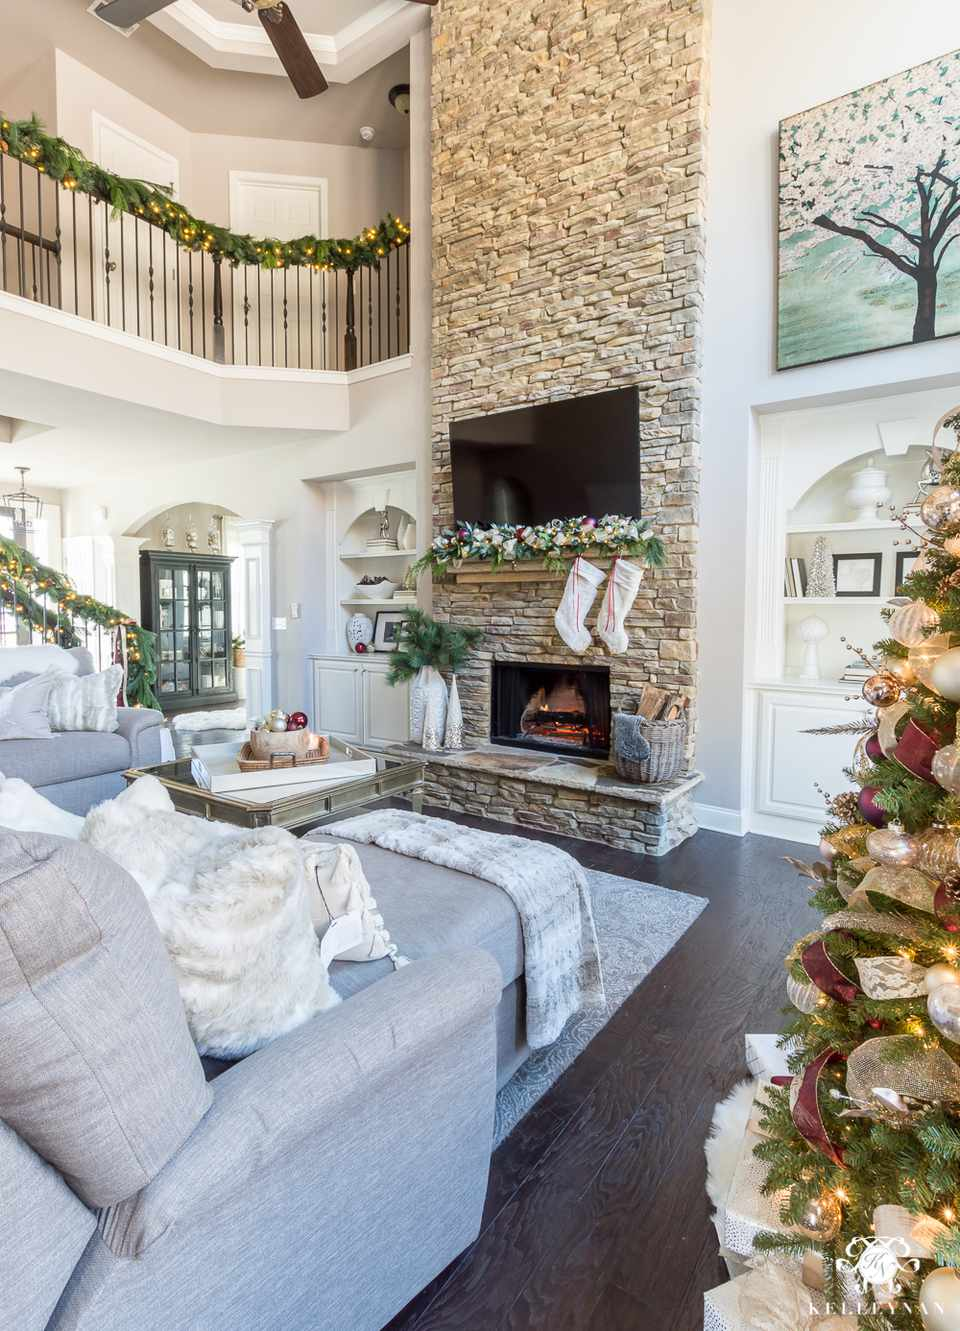 21 beautiful ways to decorate the living room for christmas - Christmas living room decor ...